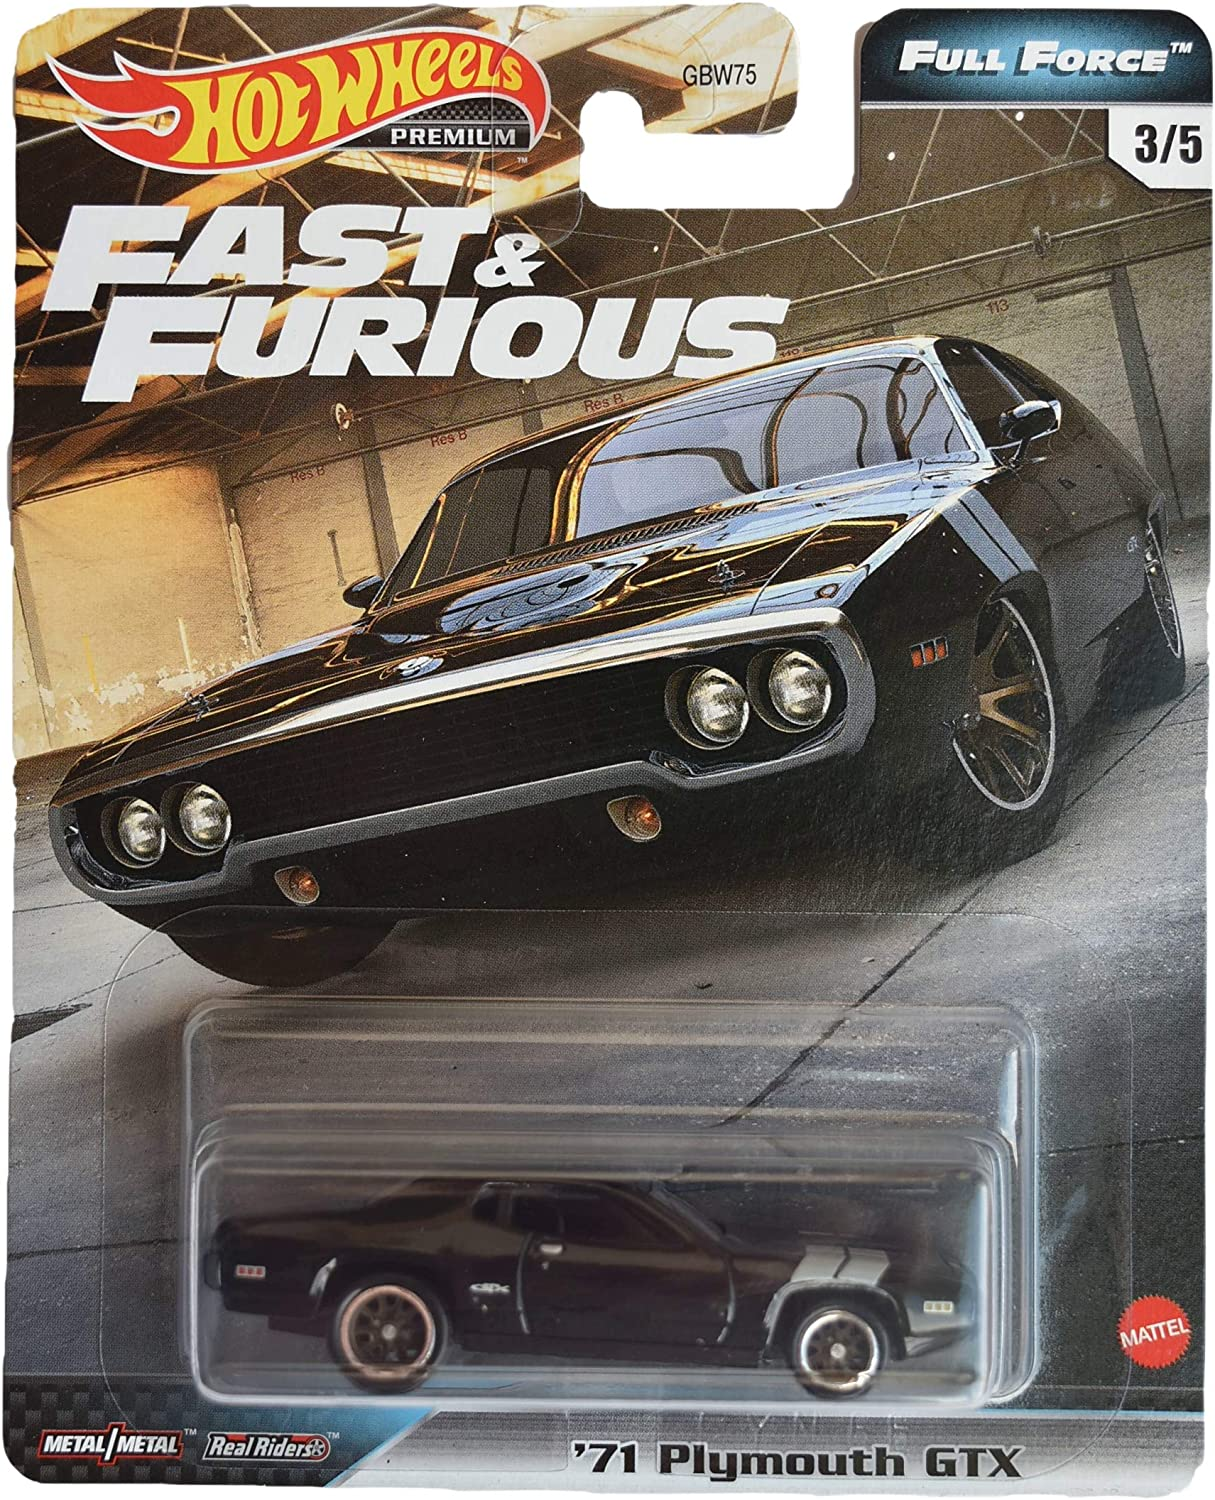 Hot Wheels Plymouth GTX 1971 Fast And Furious Voll Force GBW75-956H 1//64